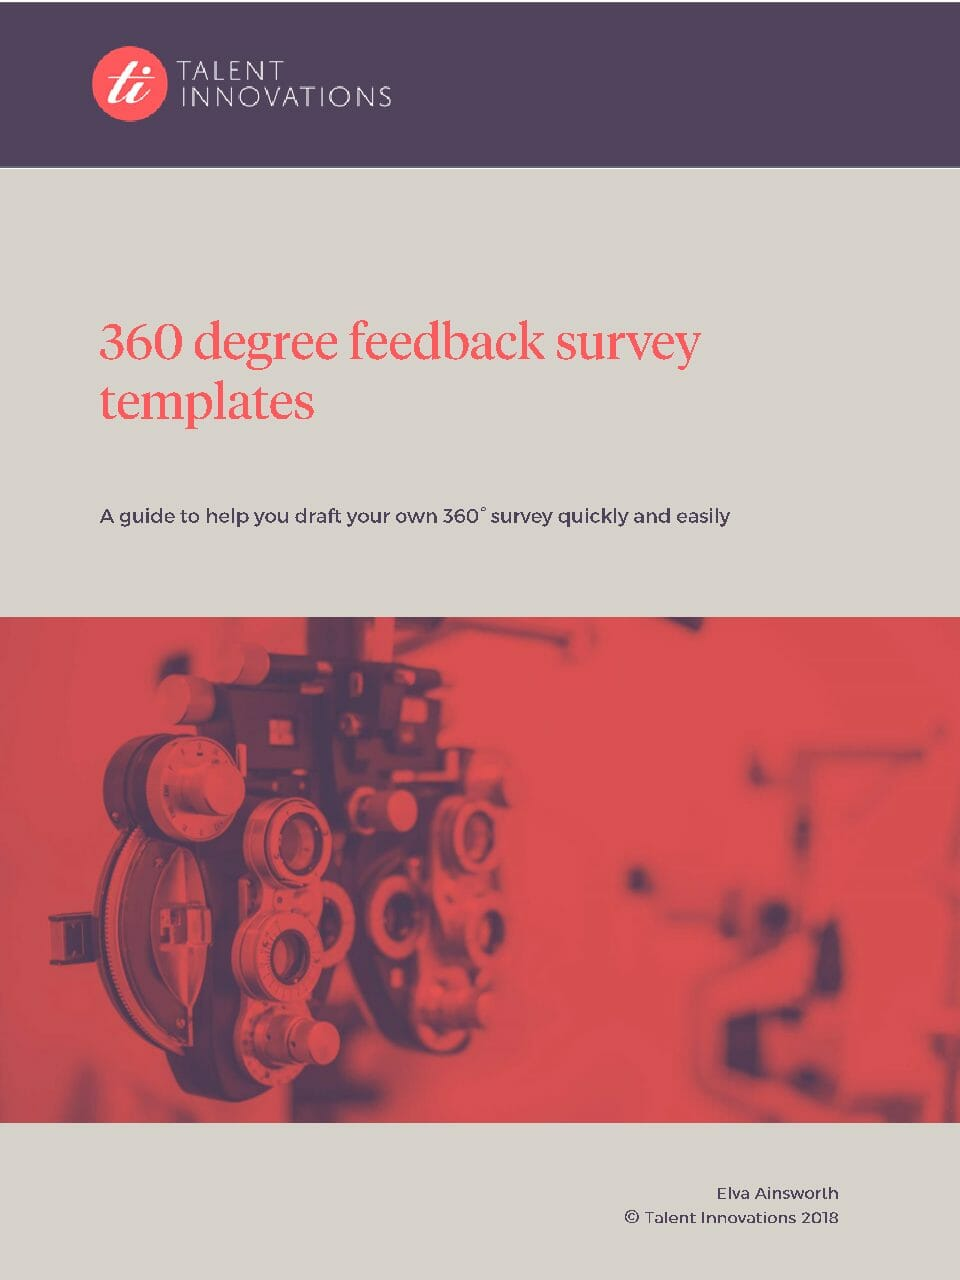 360 Guide 4 – 360 degree feedback survey templates